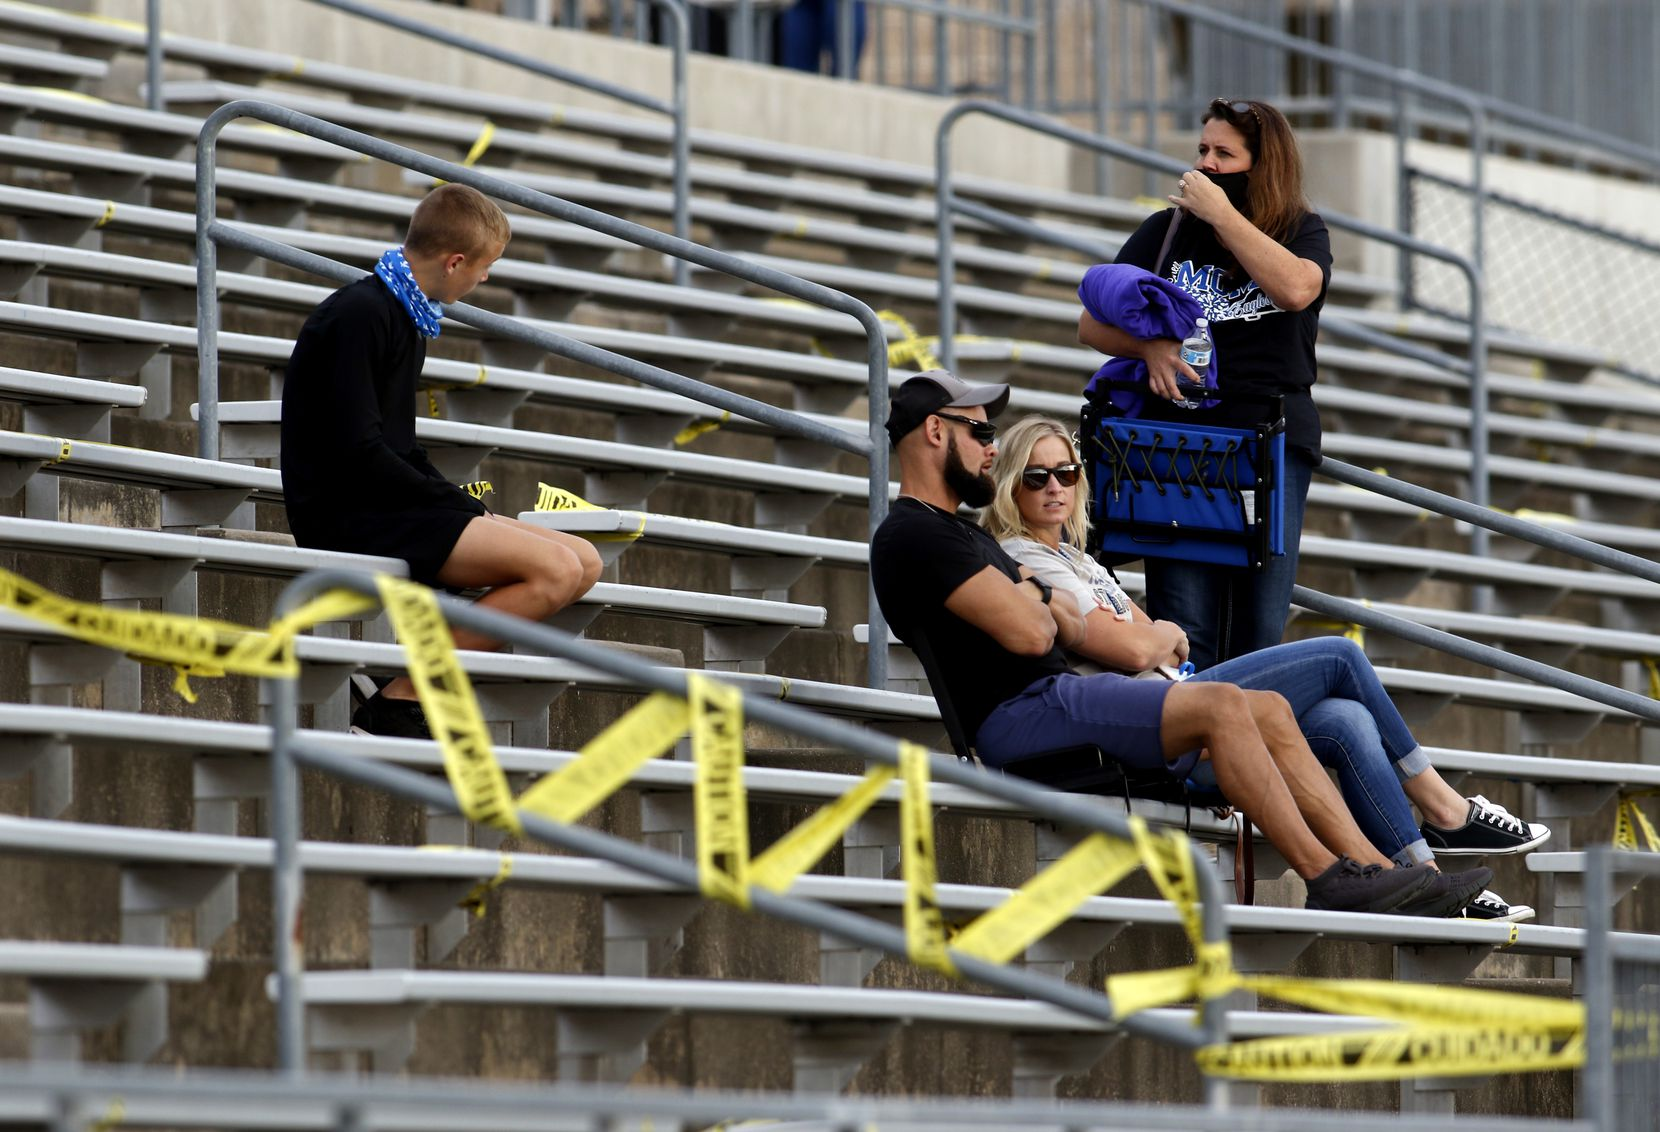 A group of Lindale fans await the opening kickoff of their scheduled  football game against Midlothian Heritage. The two teams played their Class 4A football game at Midlothian ISD Multipurpose Stadium in Midlothian on September 4, 2020. (Steve Hamm/ Special Contributor)